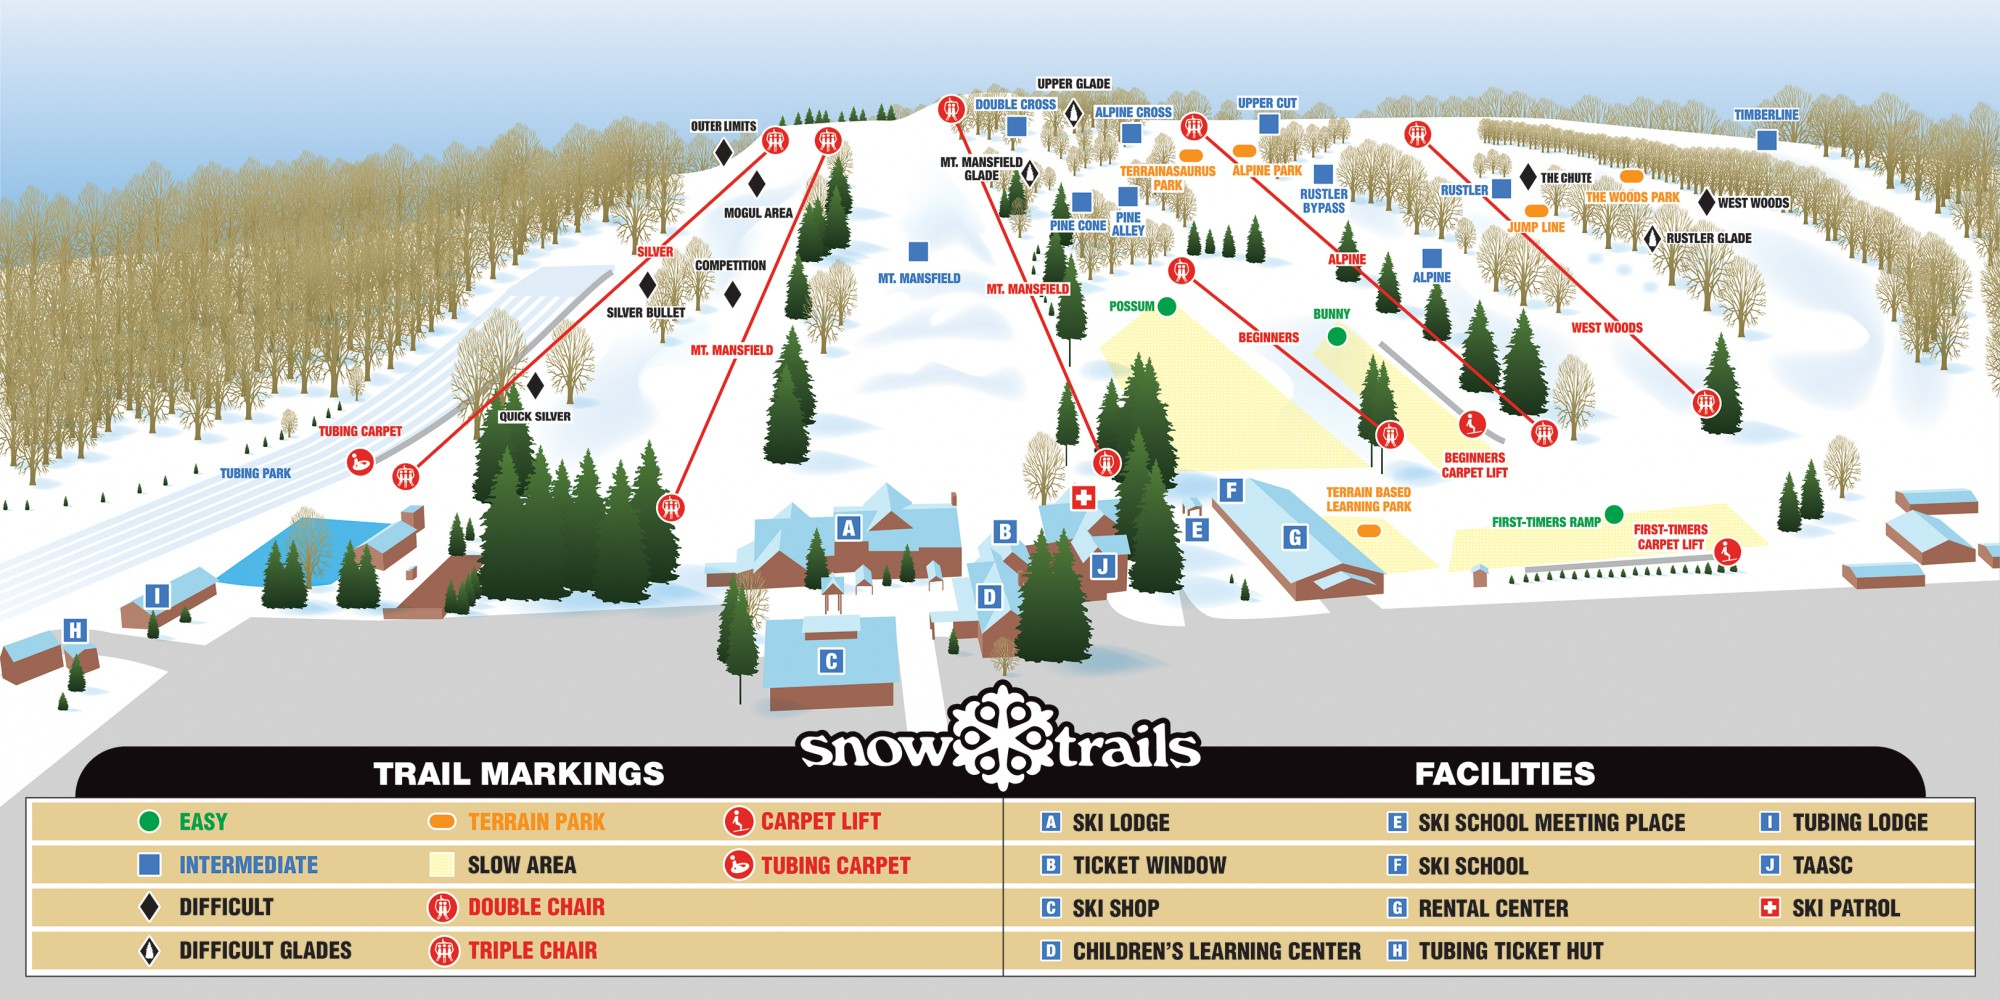 Snow Trails Map 2019-20